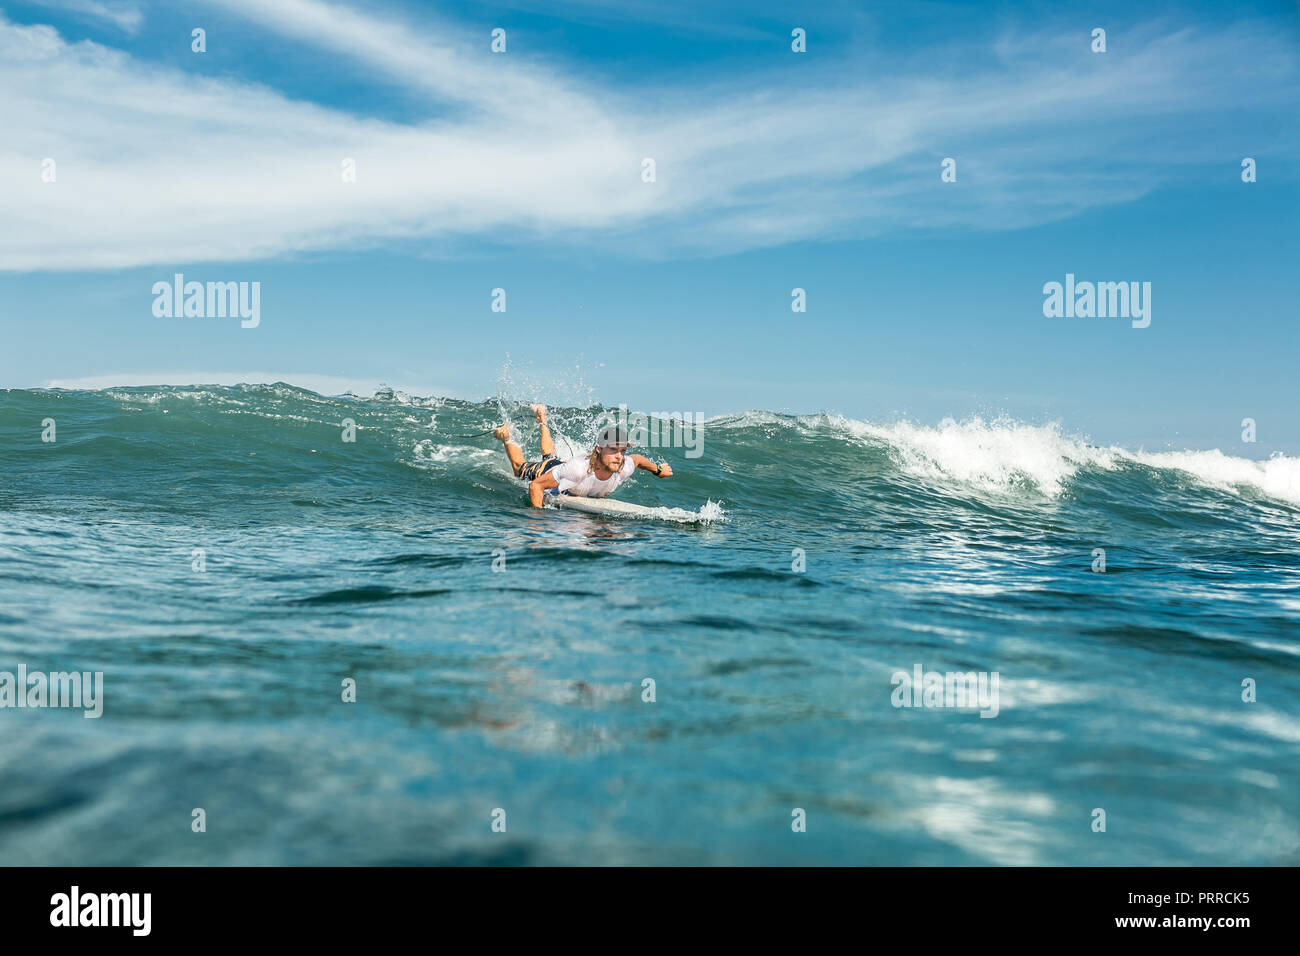 distant view of male sportsman swimming on surfing board in ocean at Nusa Dua Beach, Bali, Indonesia - Stock Image